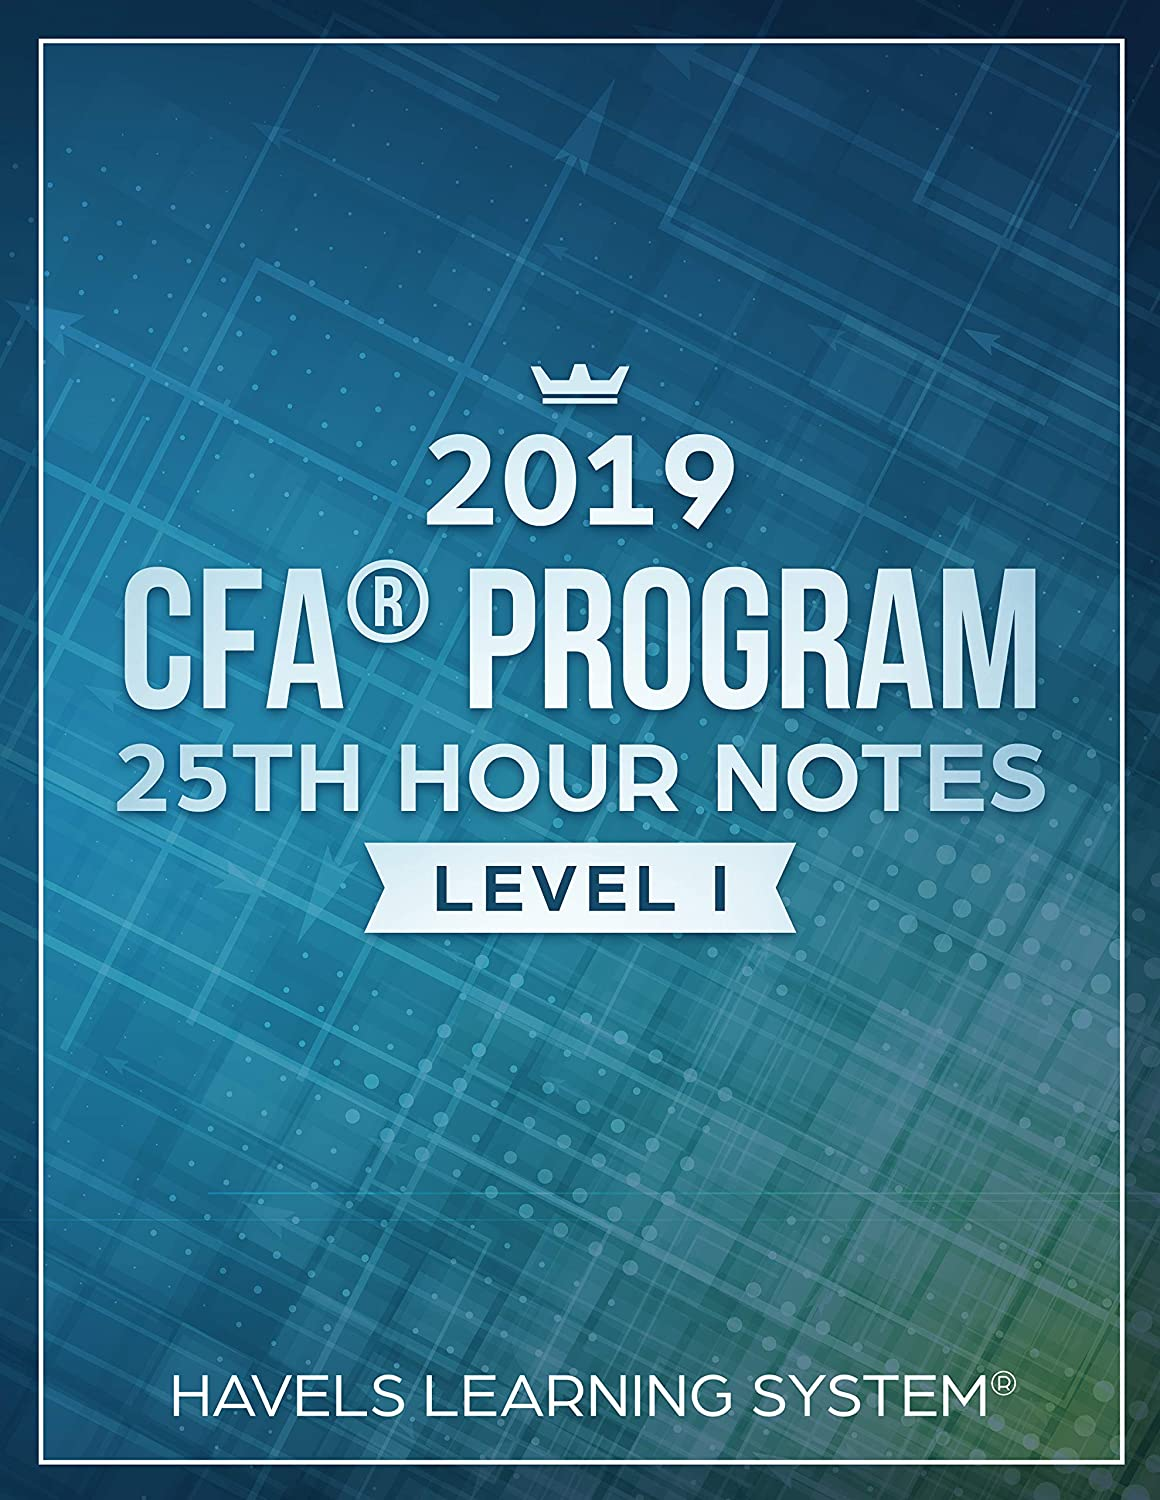 2019 CFA Level 1 - 25th HOUR NOTES: Summarize most vital concepts for each  Topic - Covers entire syllabus See more